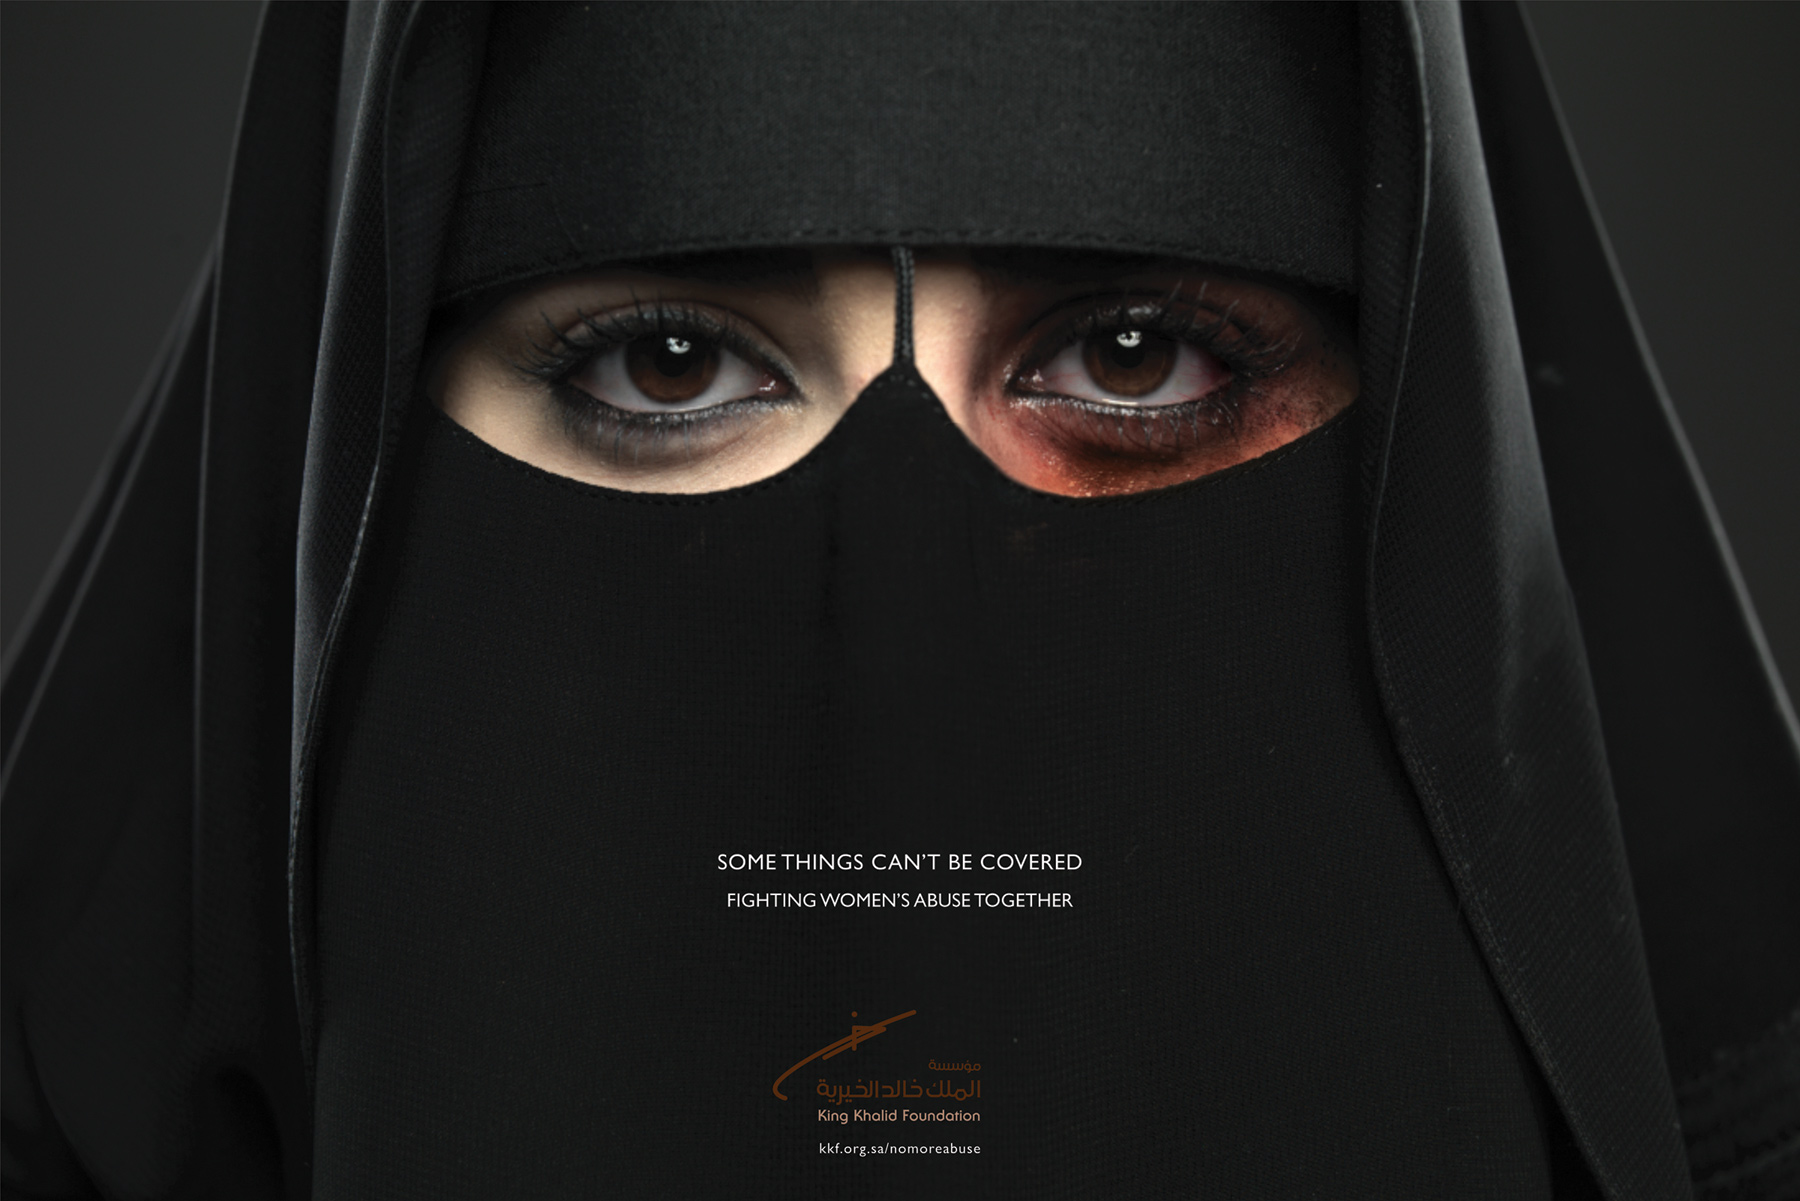 The first women's abuse ad to ever run in Saudi Arabia